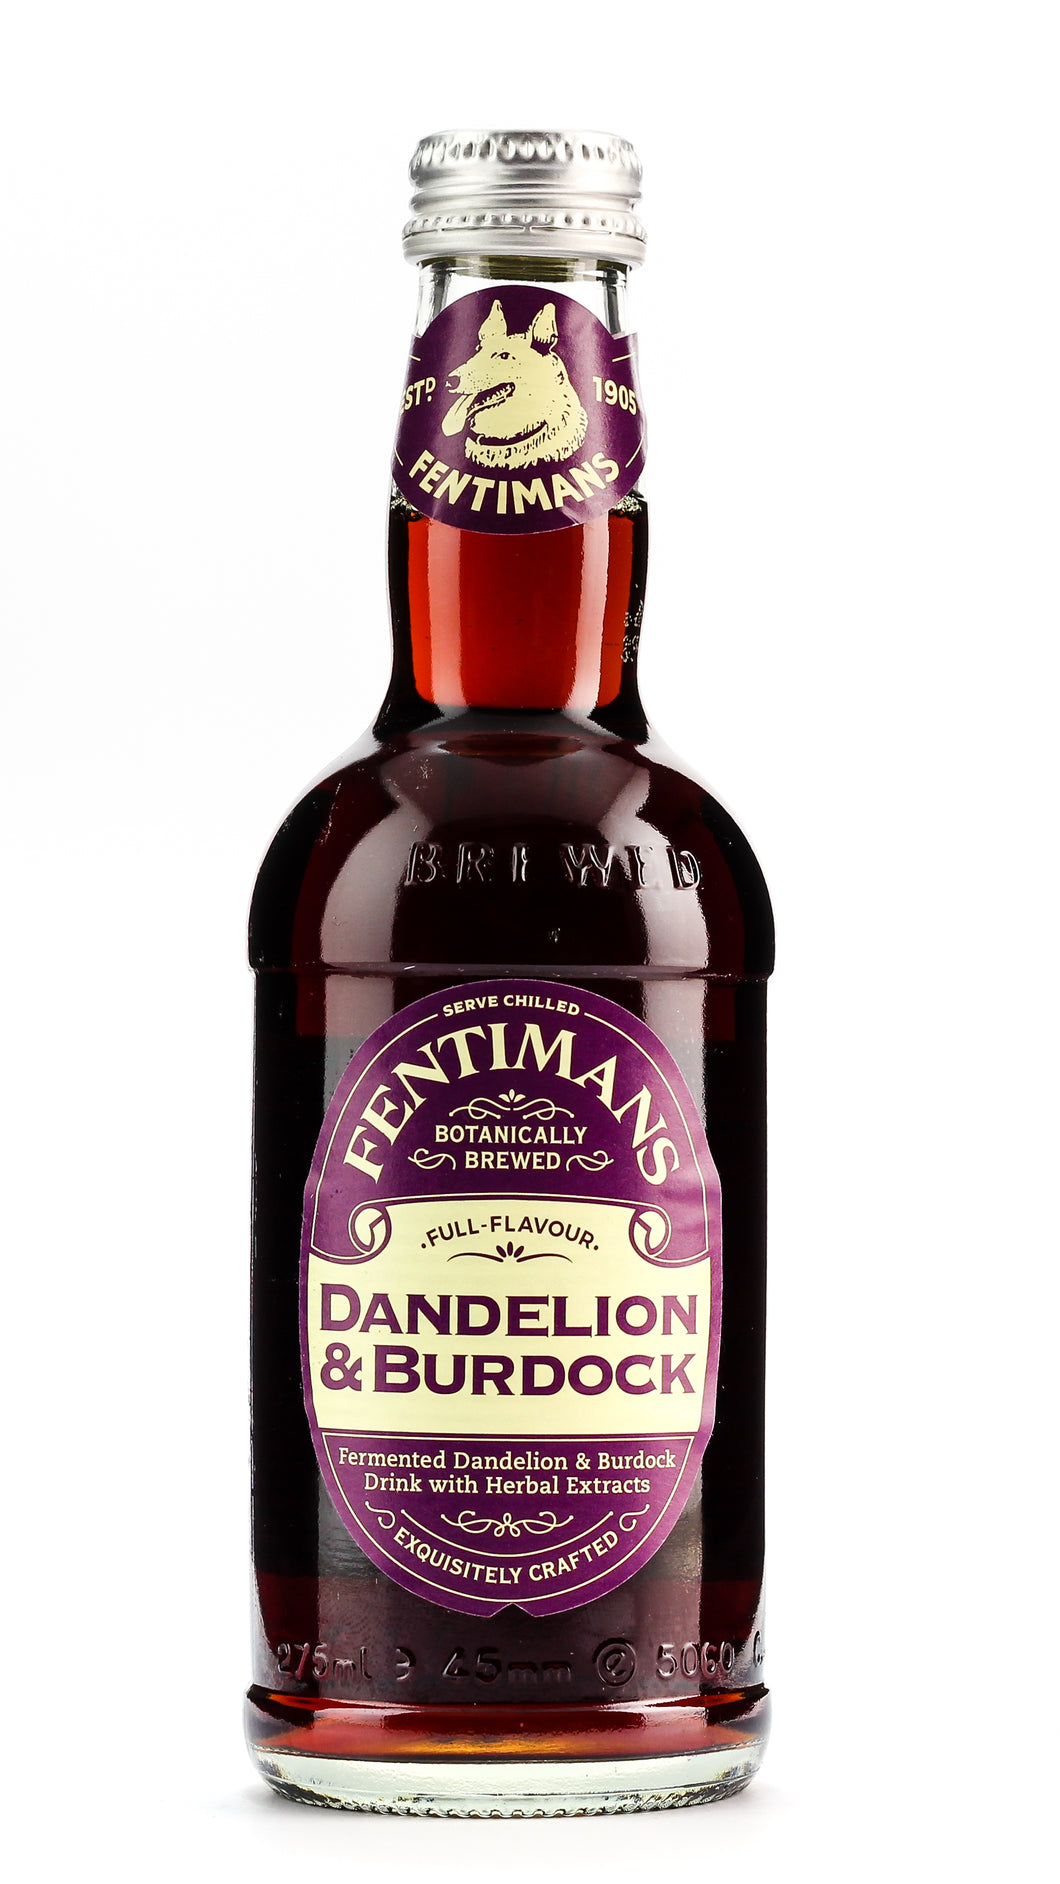 FENTIMANS DANDELION & BURDOCK 275ML